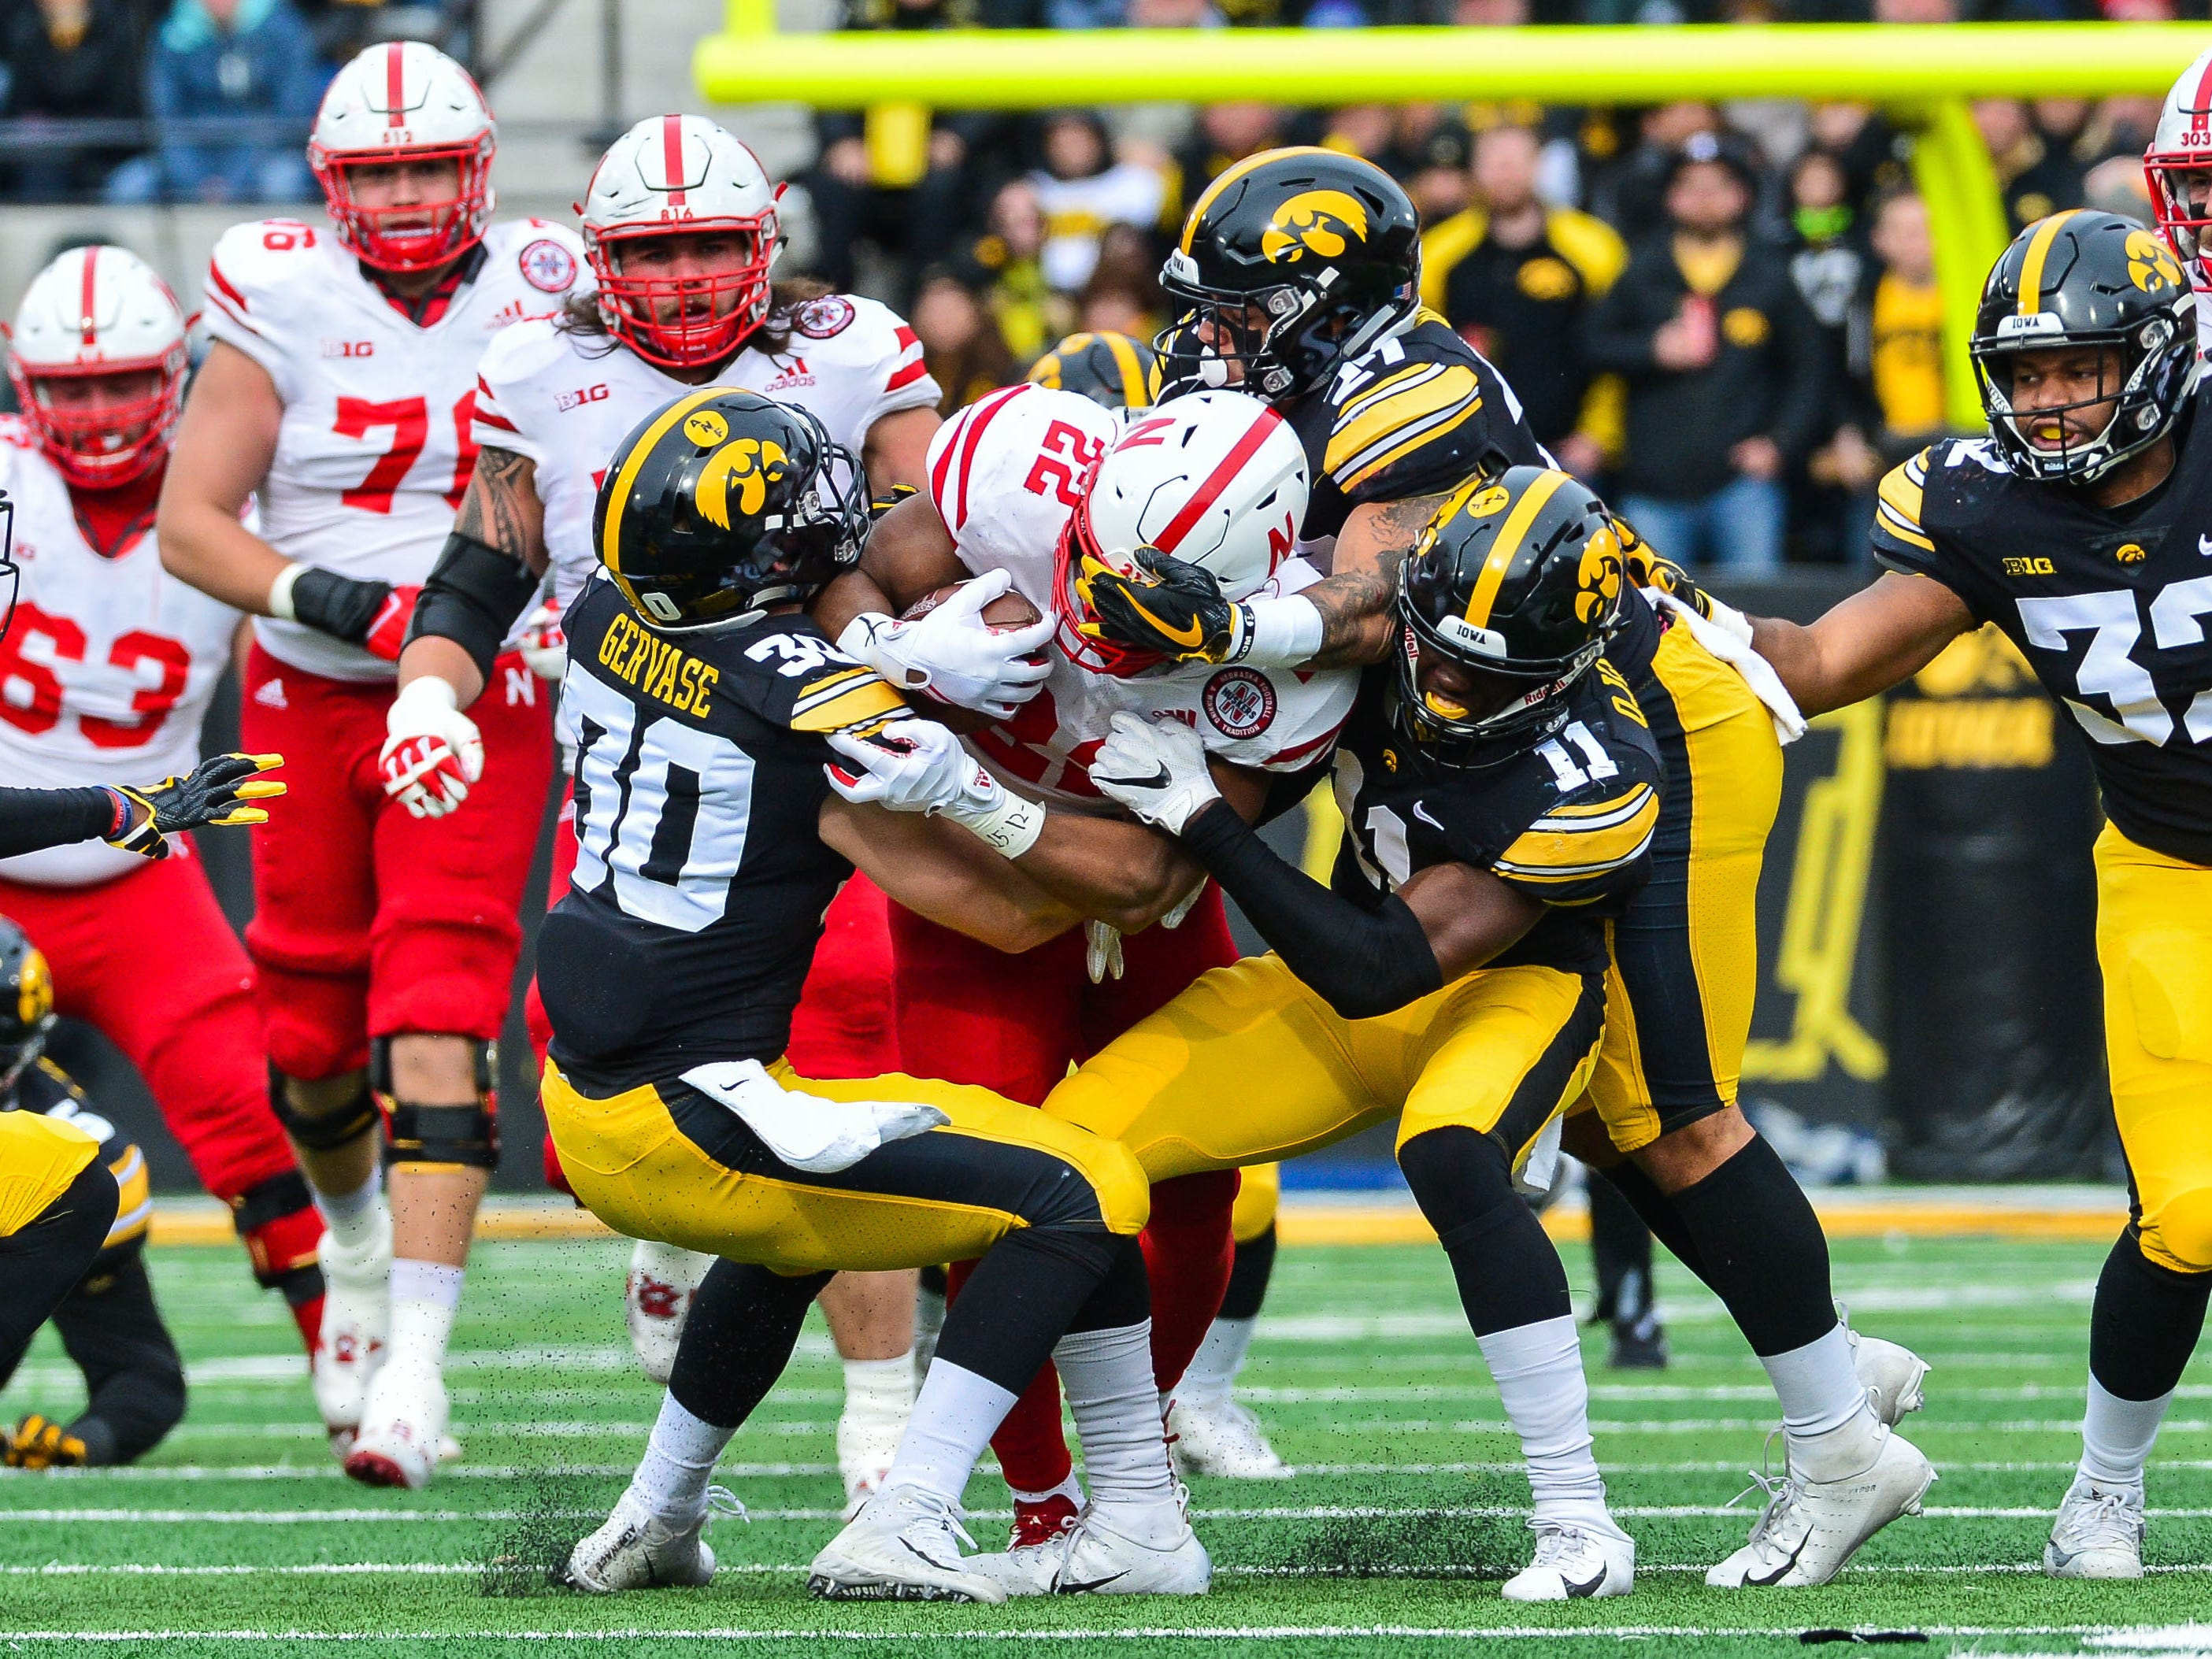 Nebraska running back Devine Ozigbo  is tackled by a group of Iowa defenders during the second quarter at Kinnick Stadium.